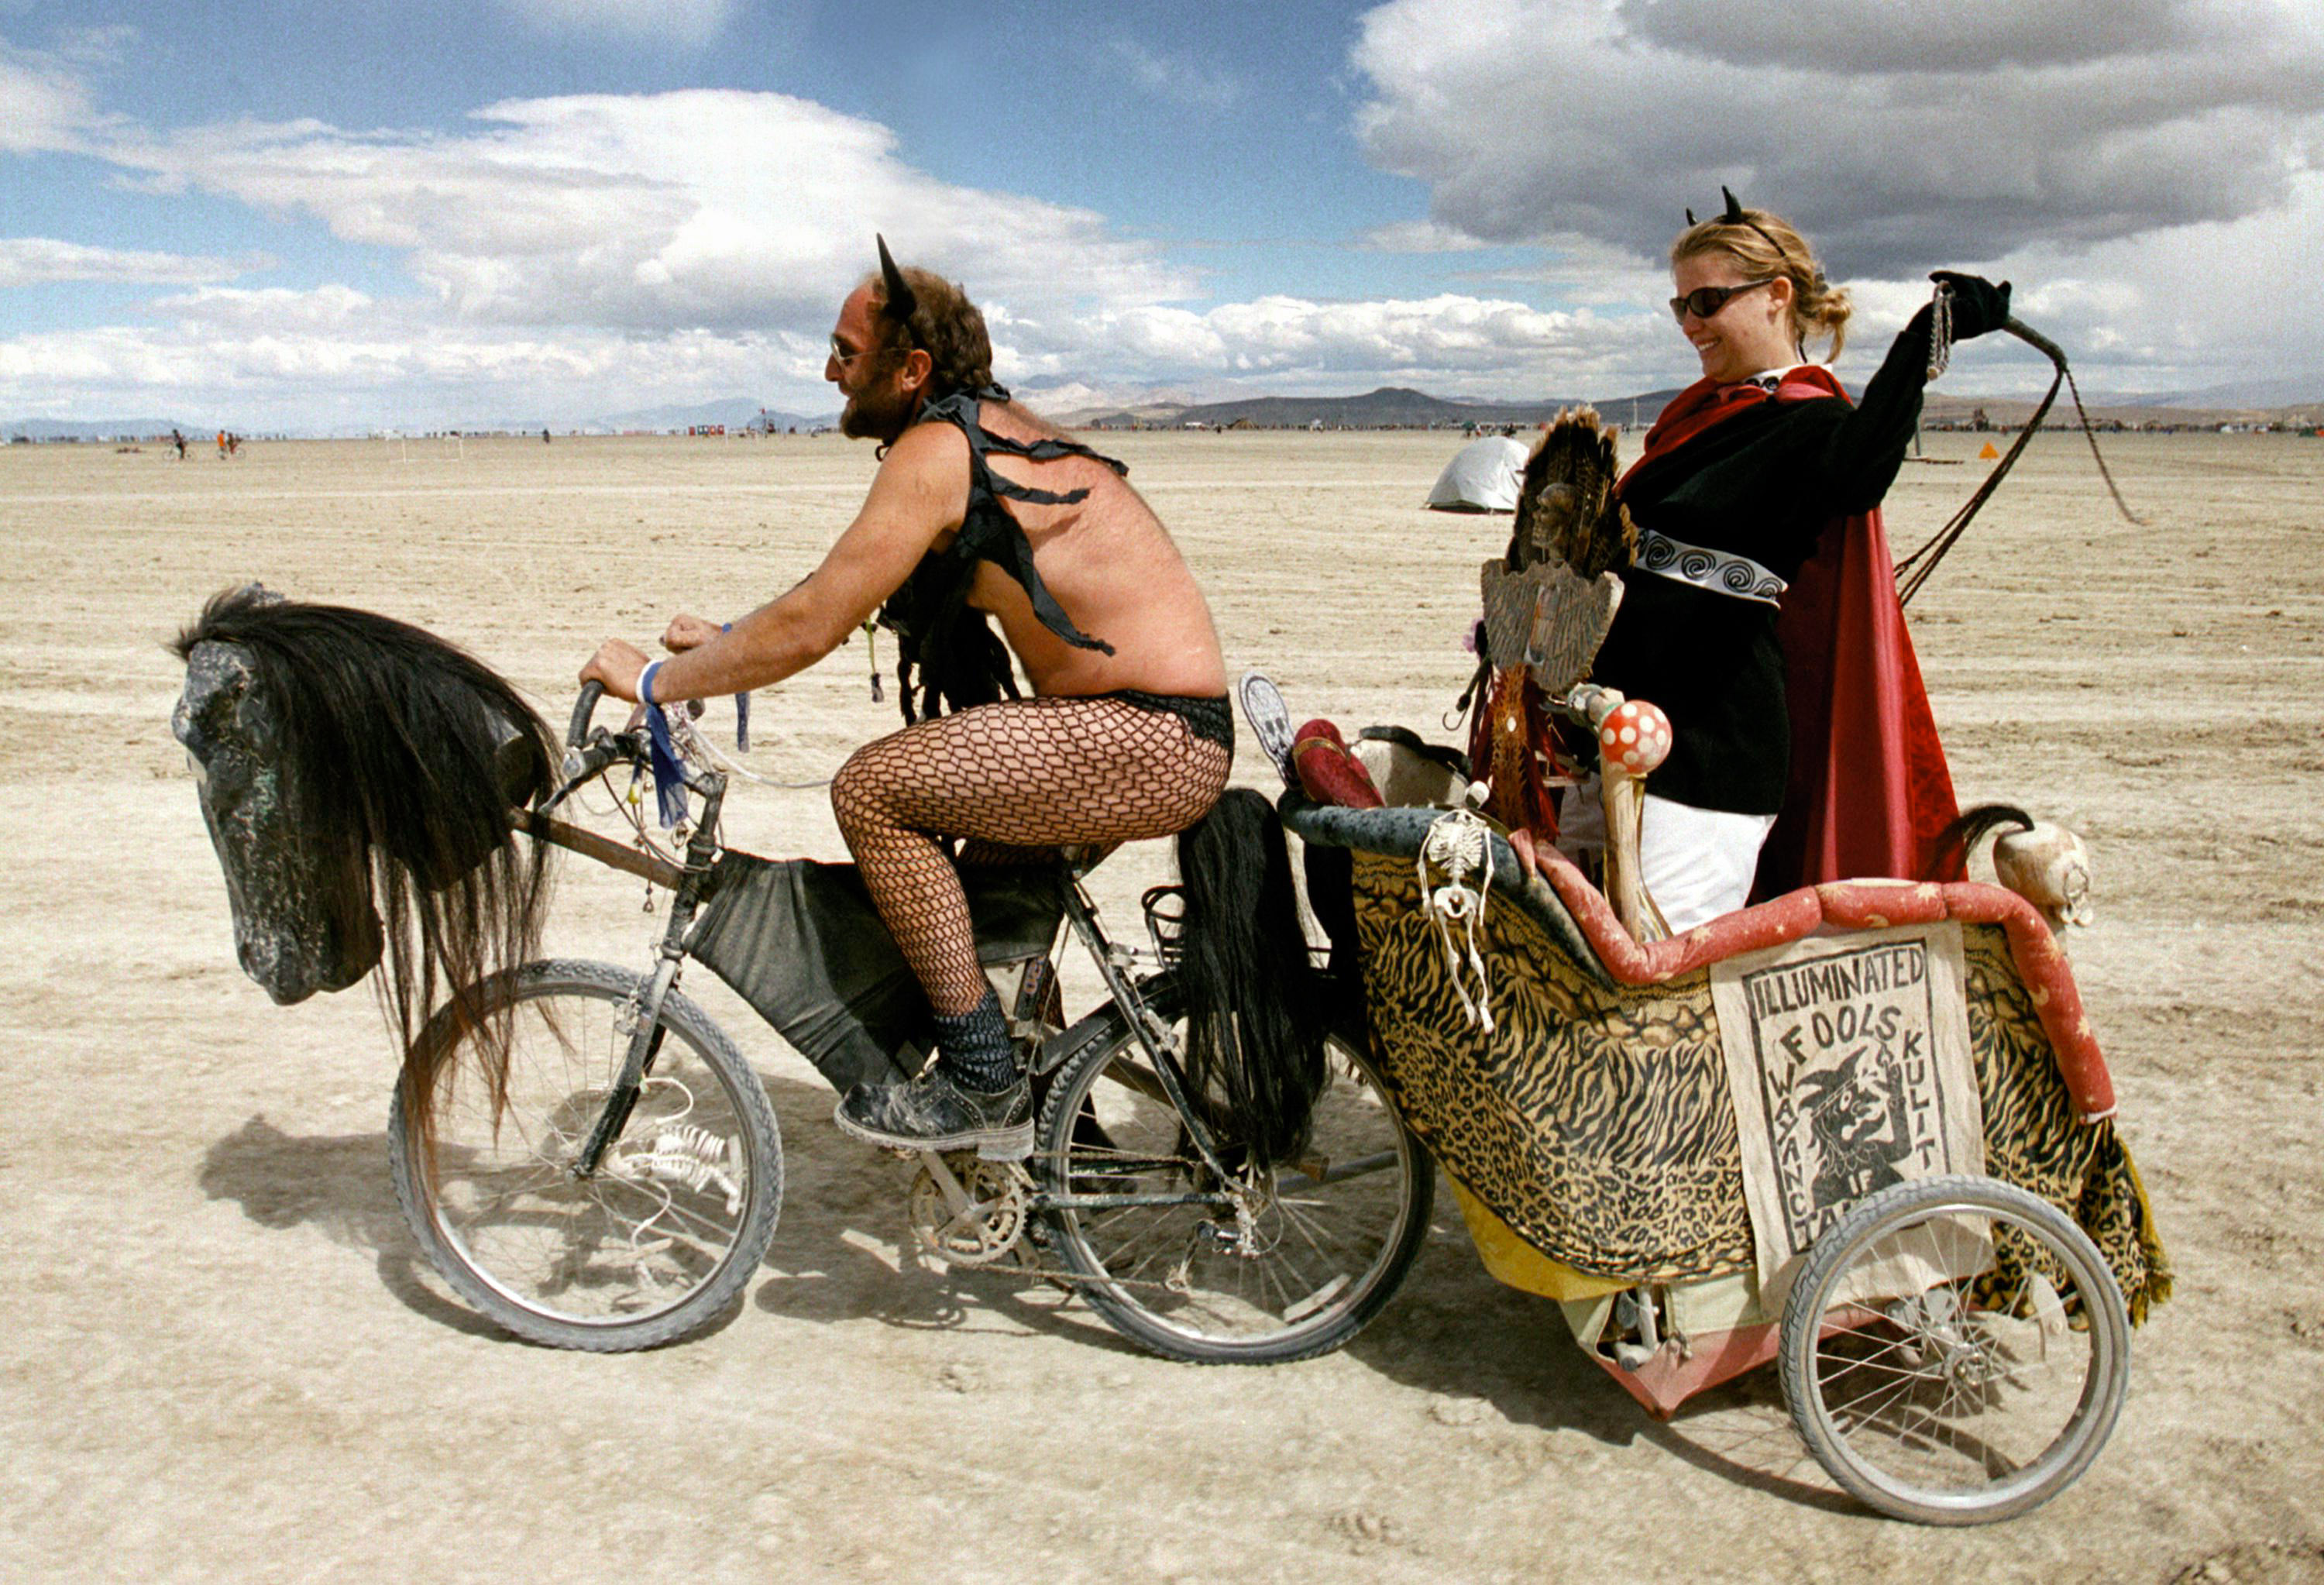 People Did Some Weird Sh*t At Burning Man Festival This Year GettyImages 72307982